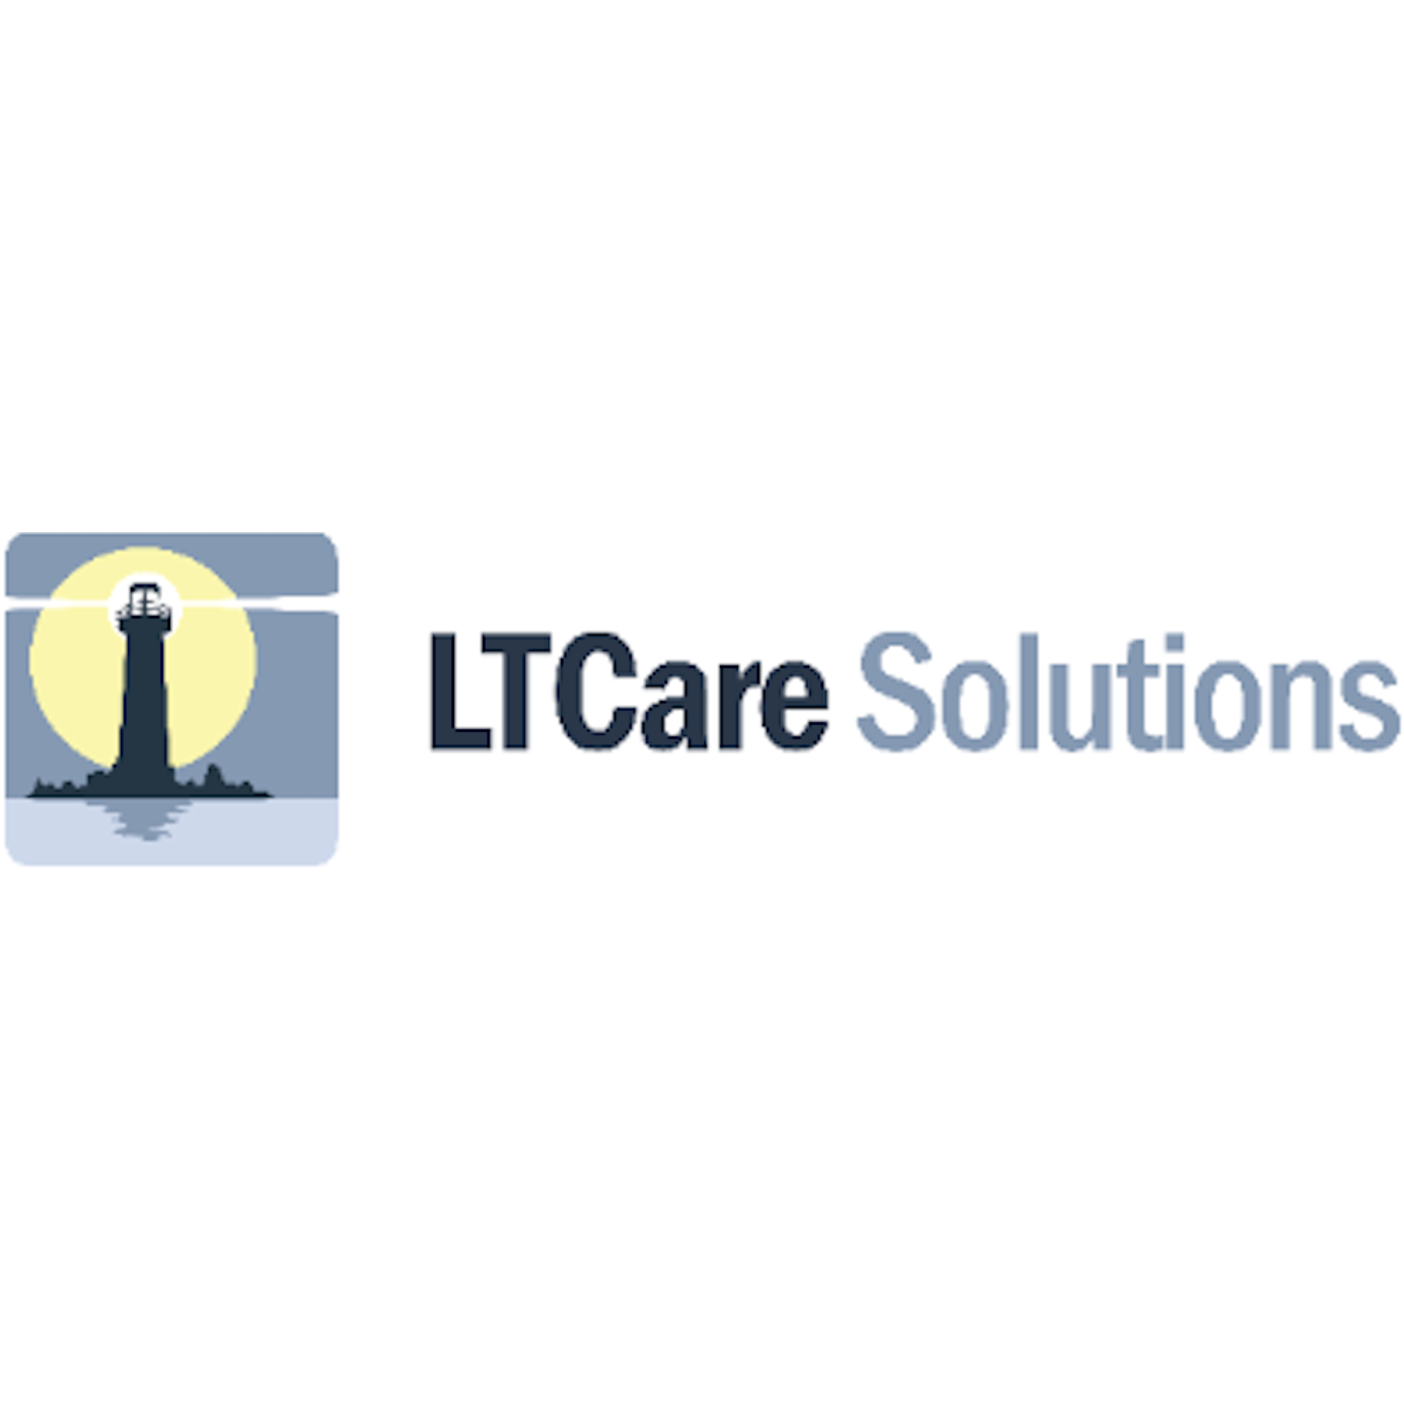 LT Care Solutions